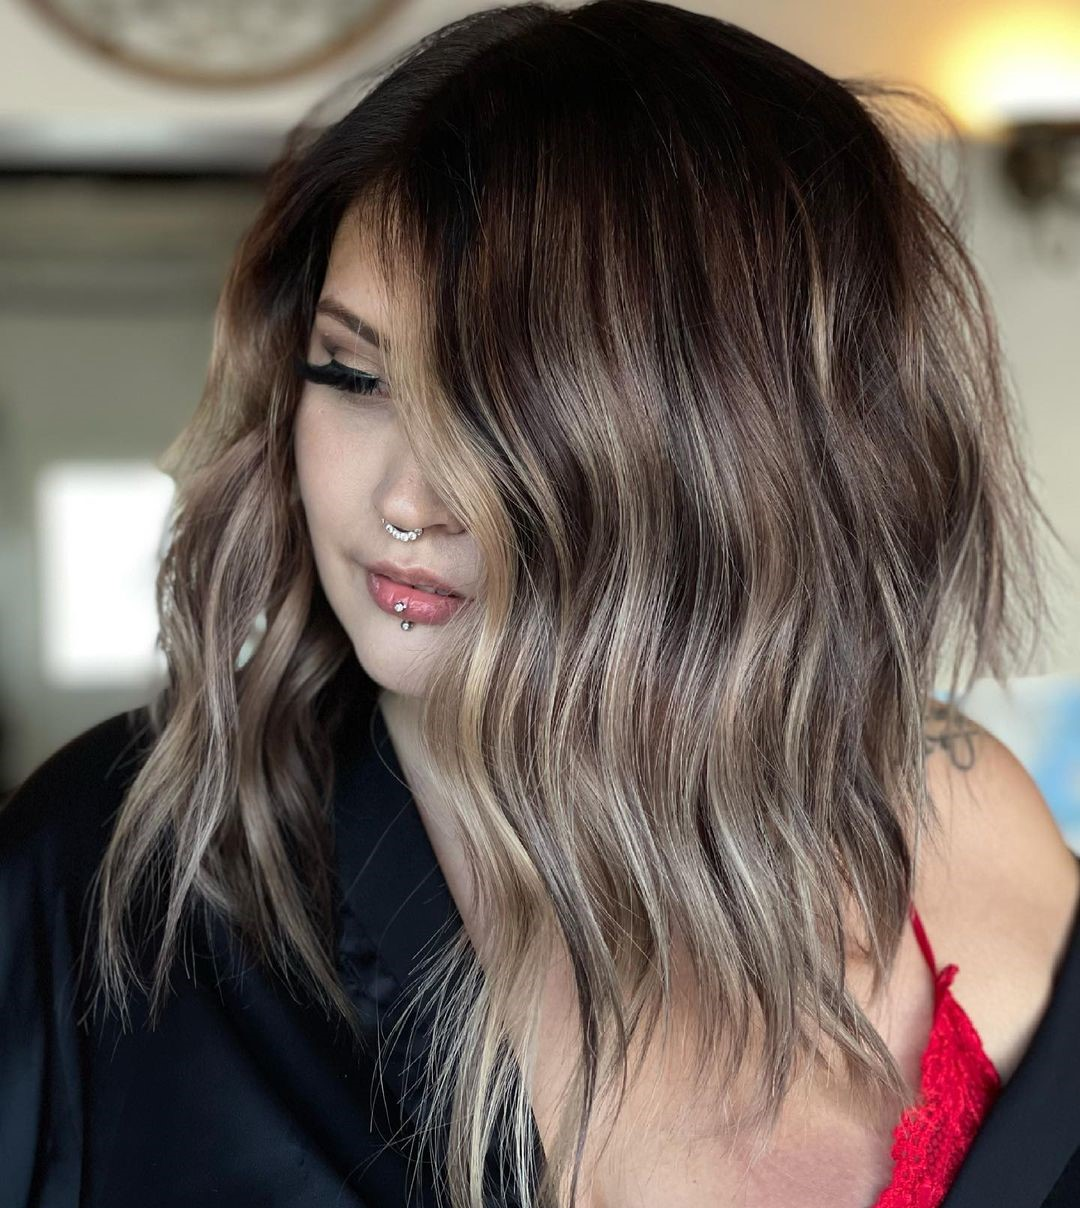 Growing Out Dark Hair with Highlights